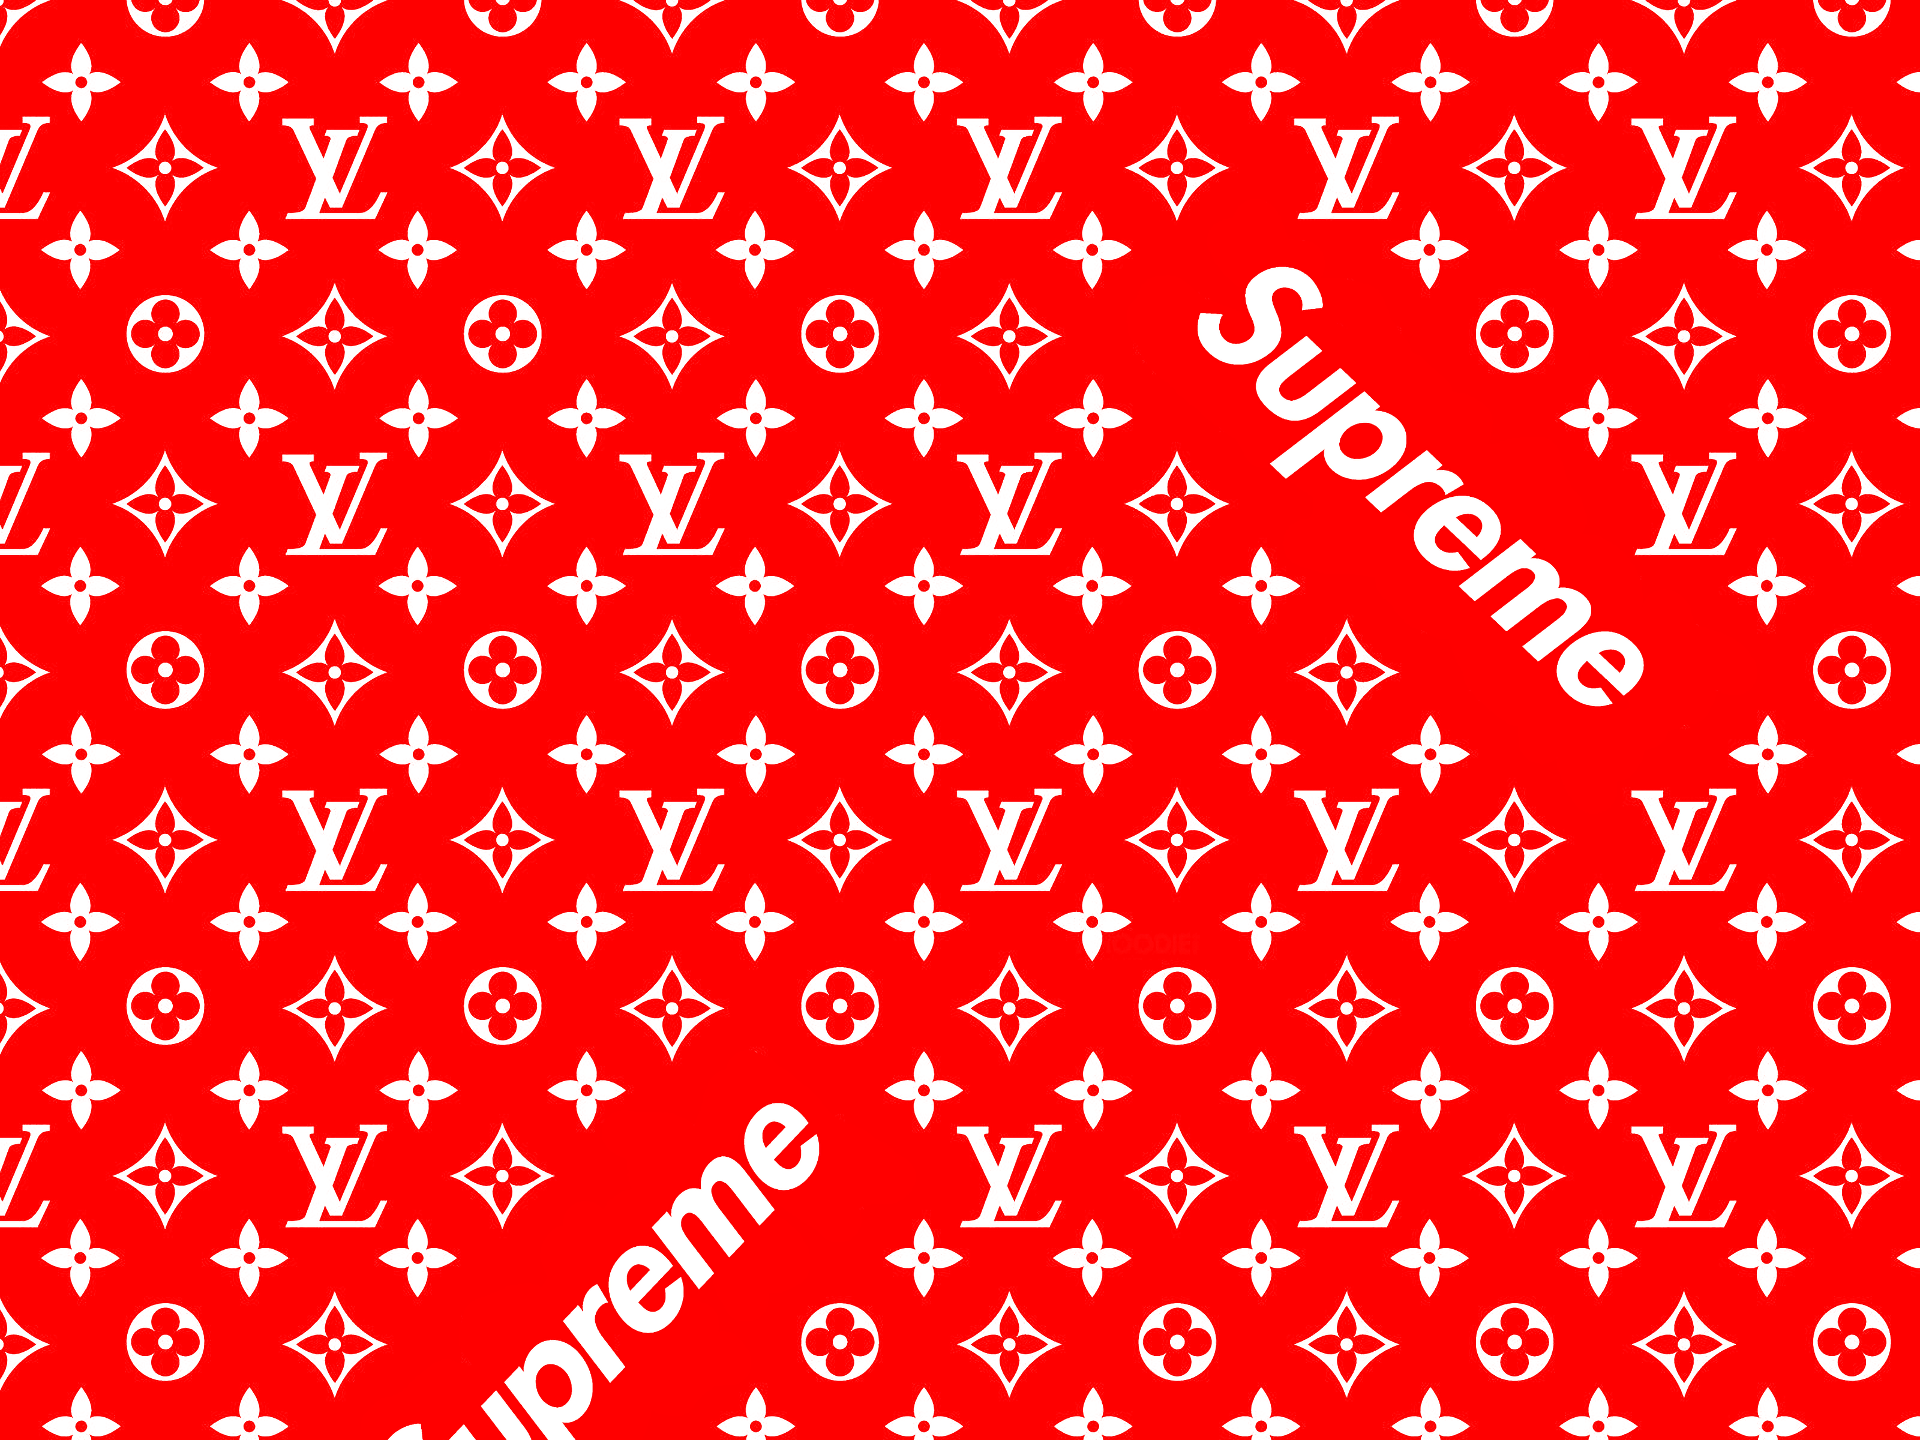 1920x1440 Supreme Wallpapers and Background Images - stmed.net